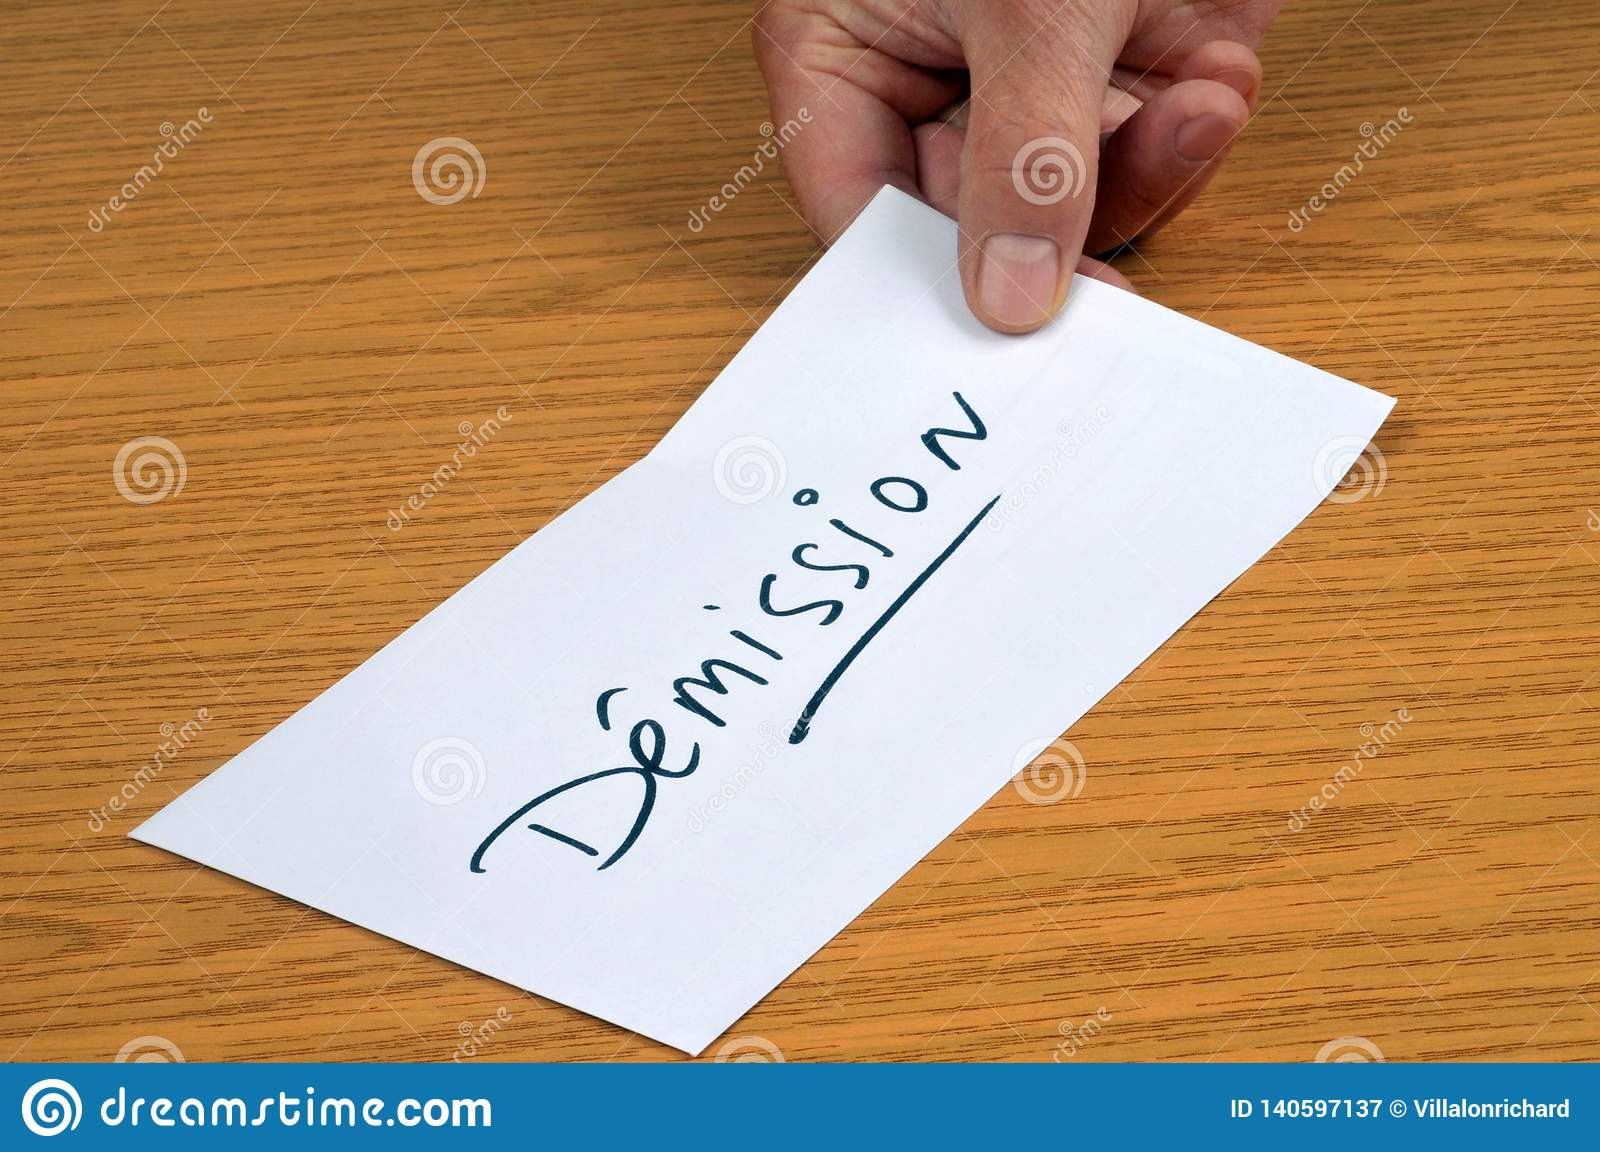 The Resignation Letter Written In French Stock Image - Image